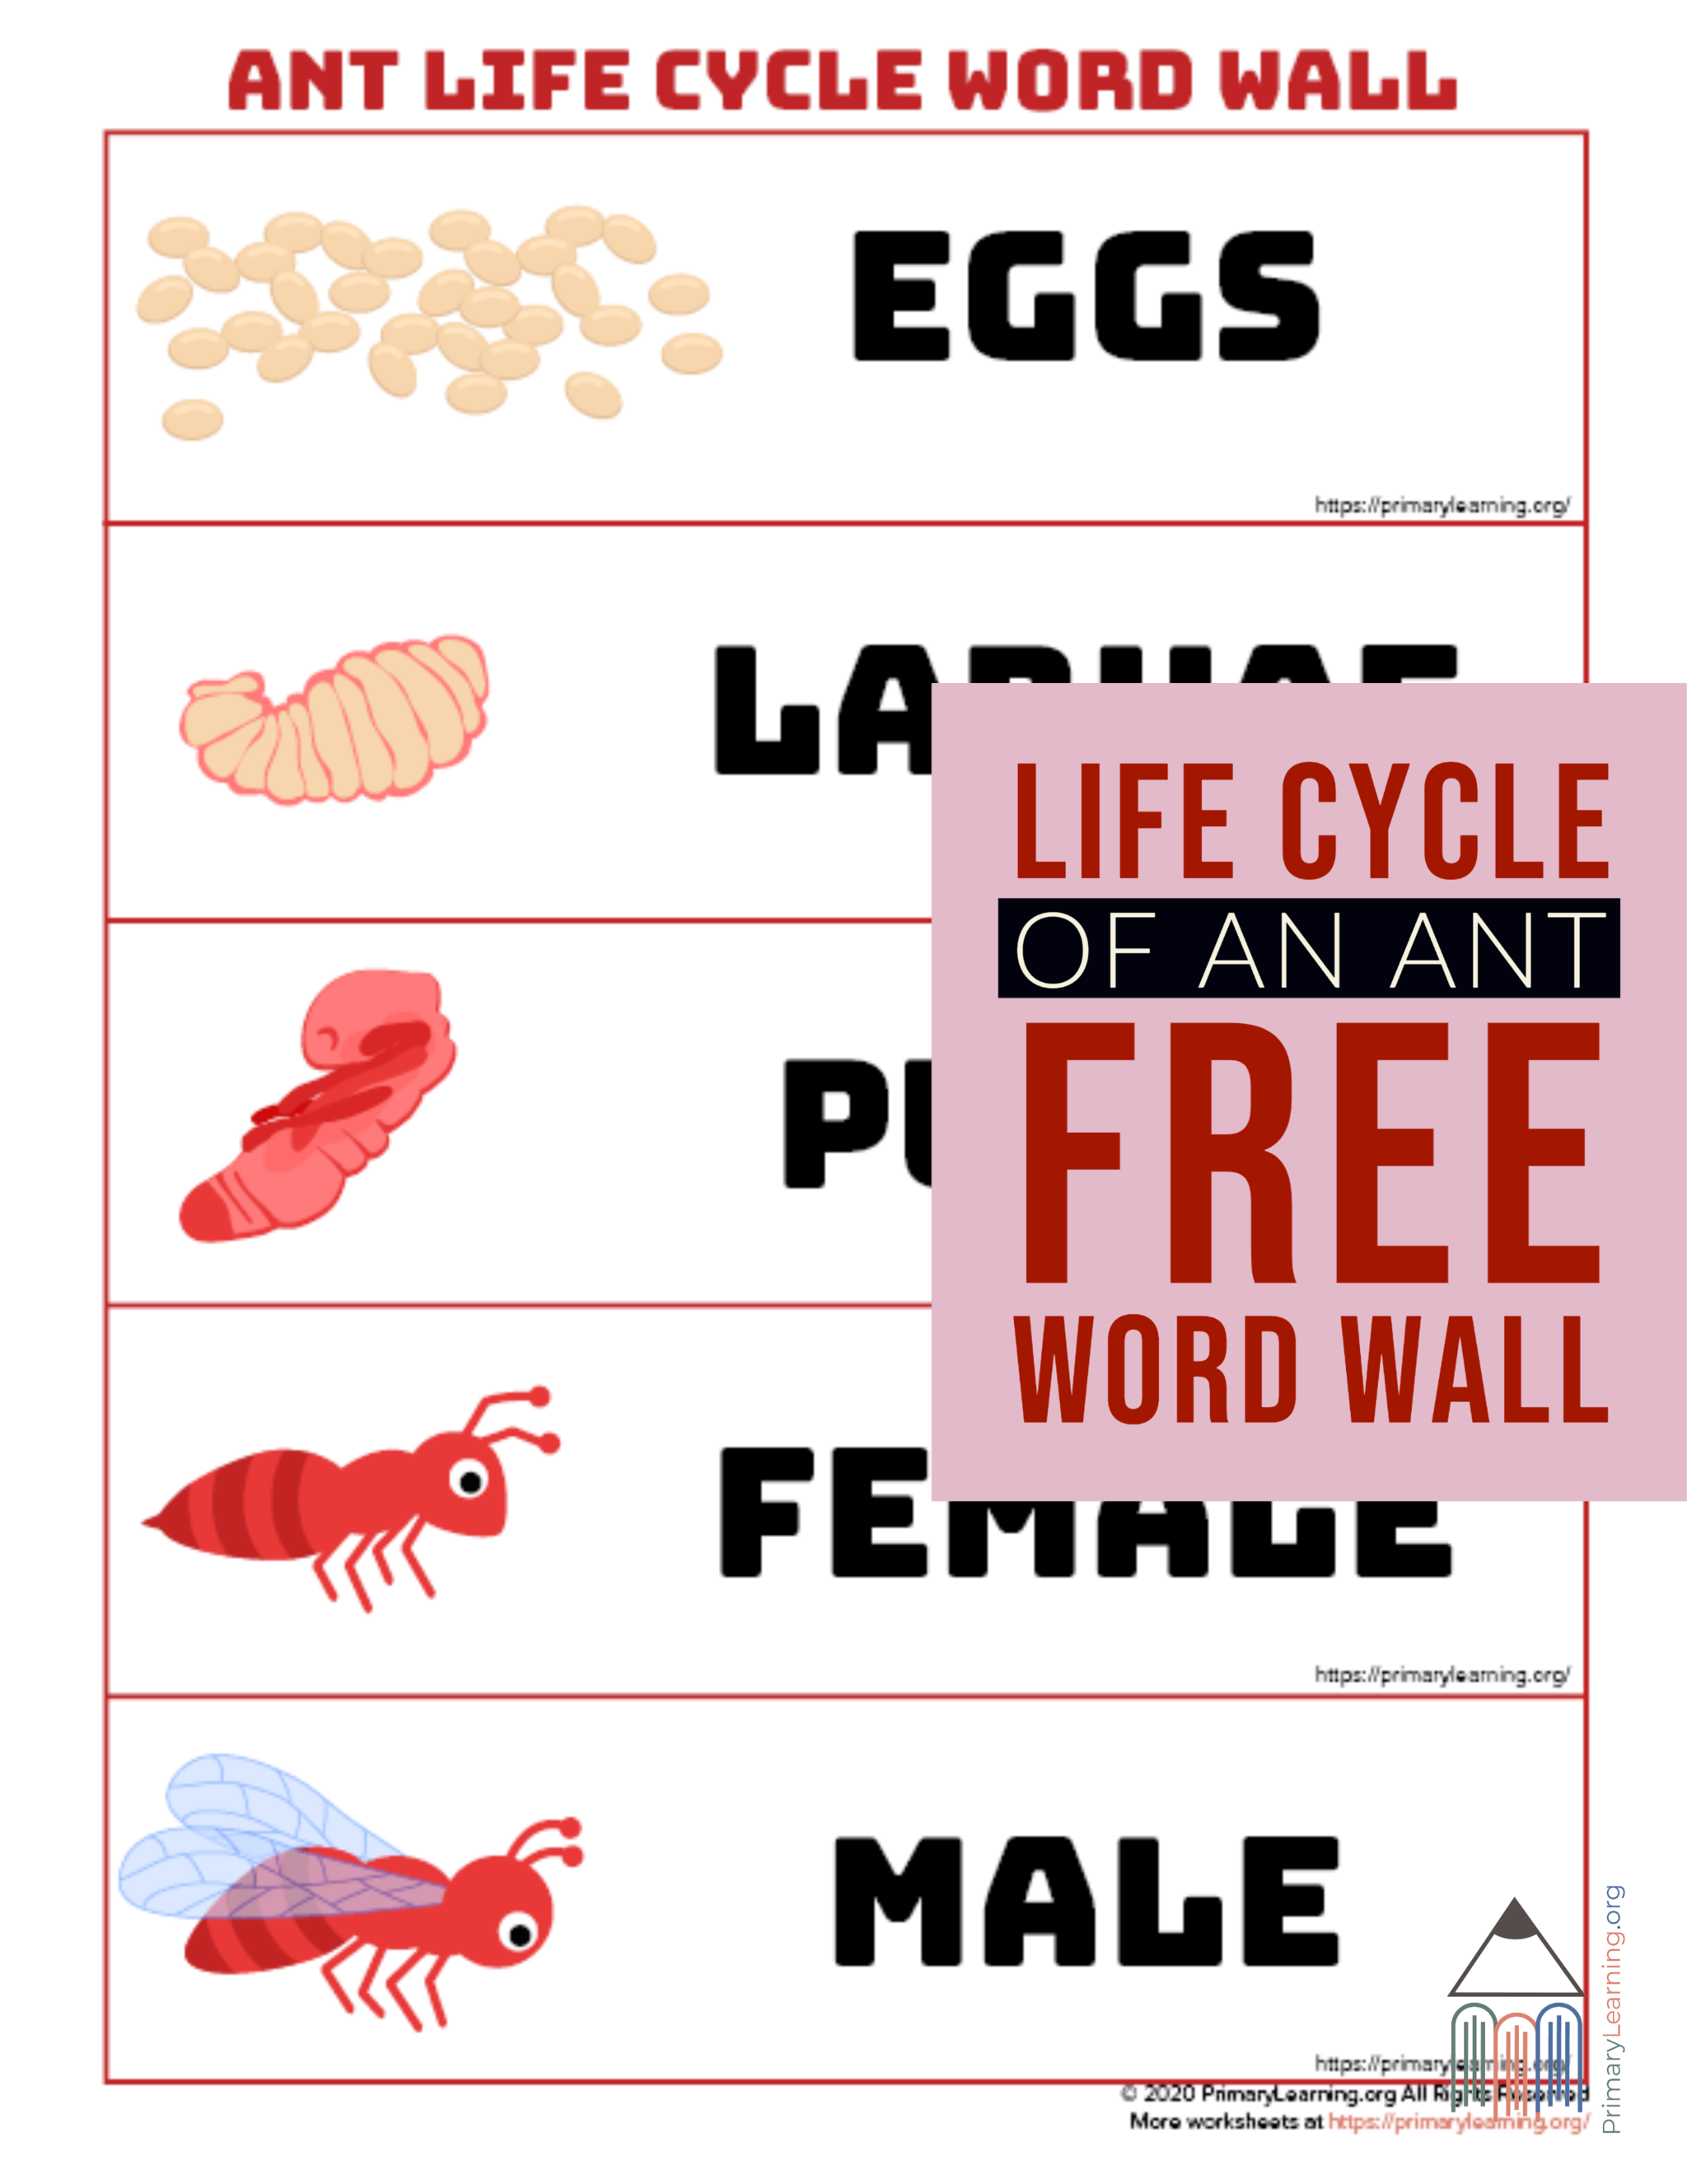 Ant Life Cycle Word Wall